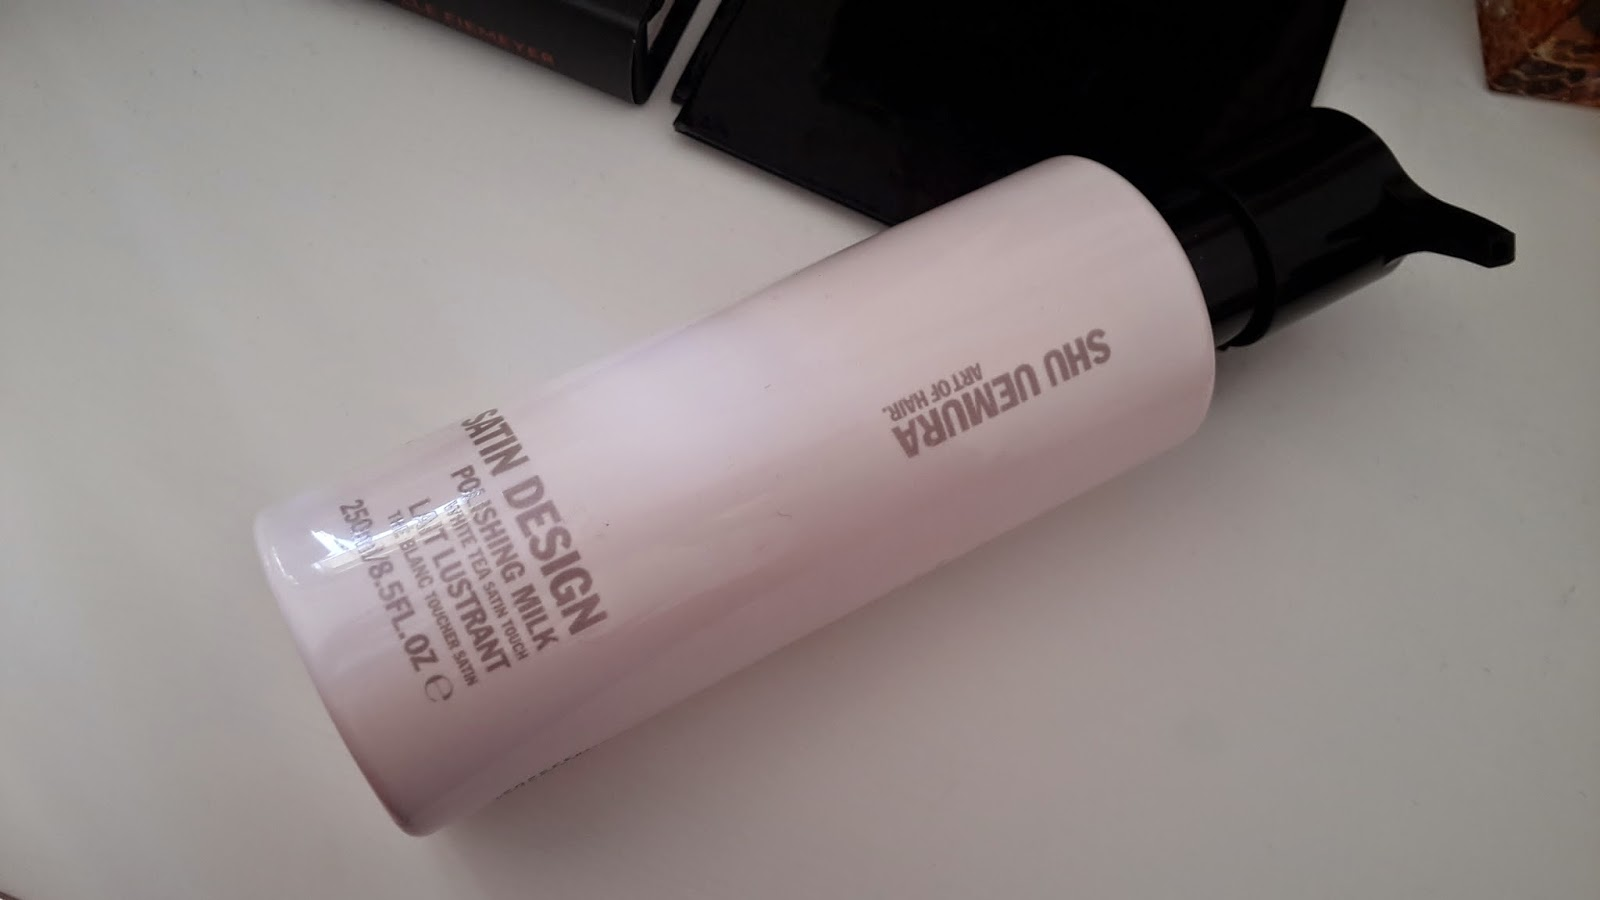 prodotti beauty skin care creme viso top 2014, shu uemura art of hair satin design polishing milk